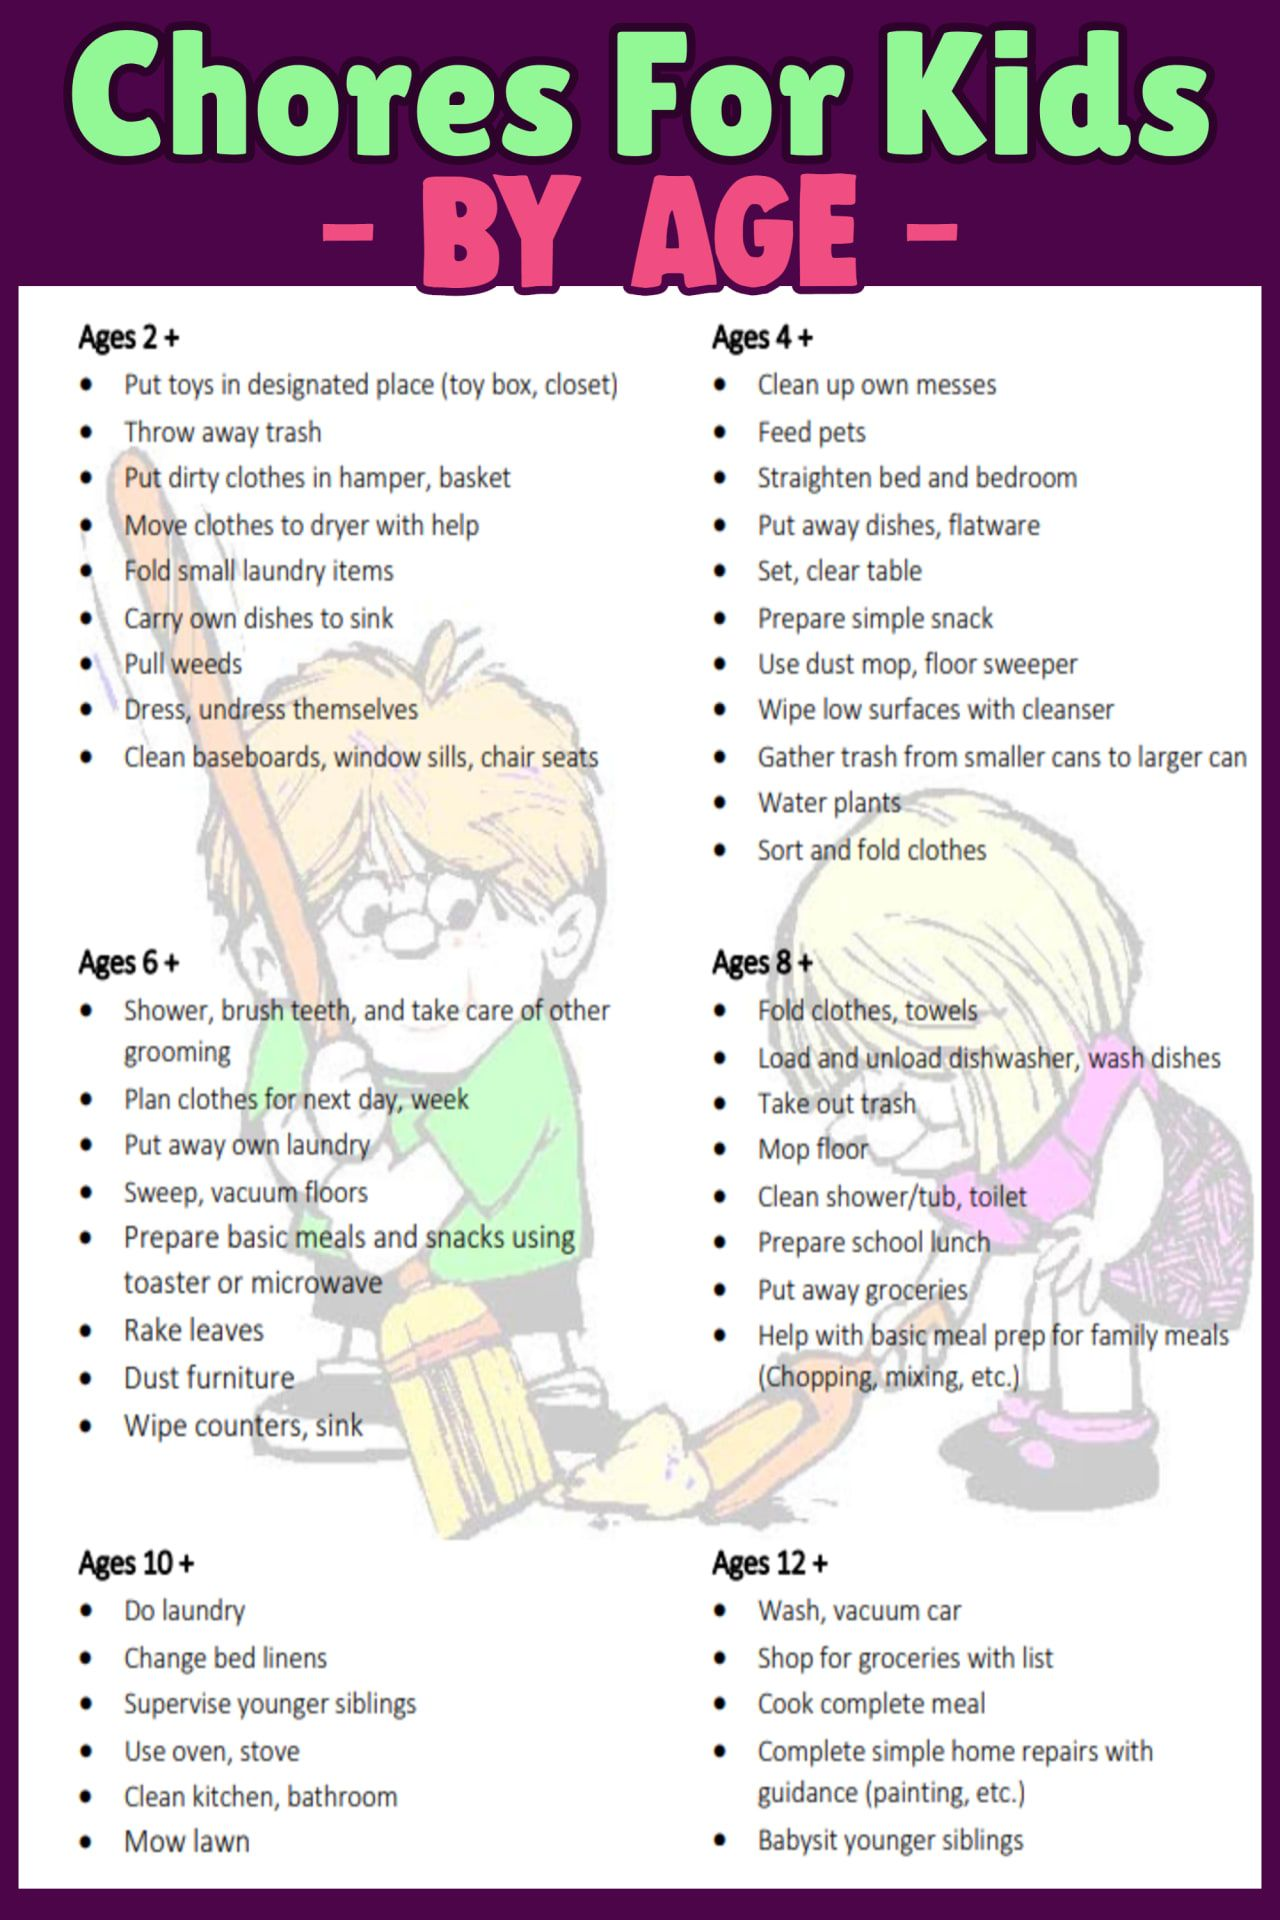 Chore Chart Ideas Easy Diy Chore Board Ideas For Kids Pictures In 2020 Age Appropriate Chores For Kids Chores For Kids Chores For Kids By Age